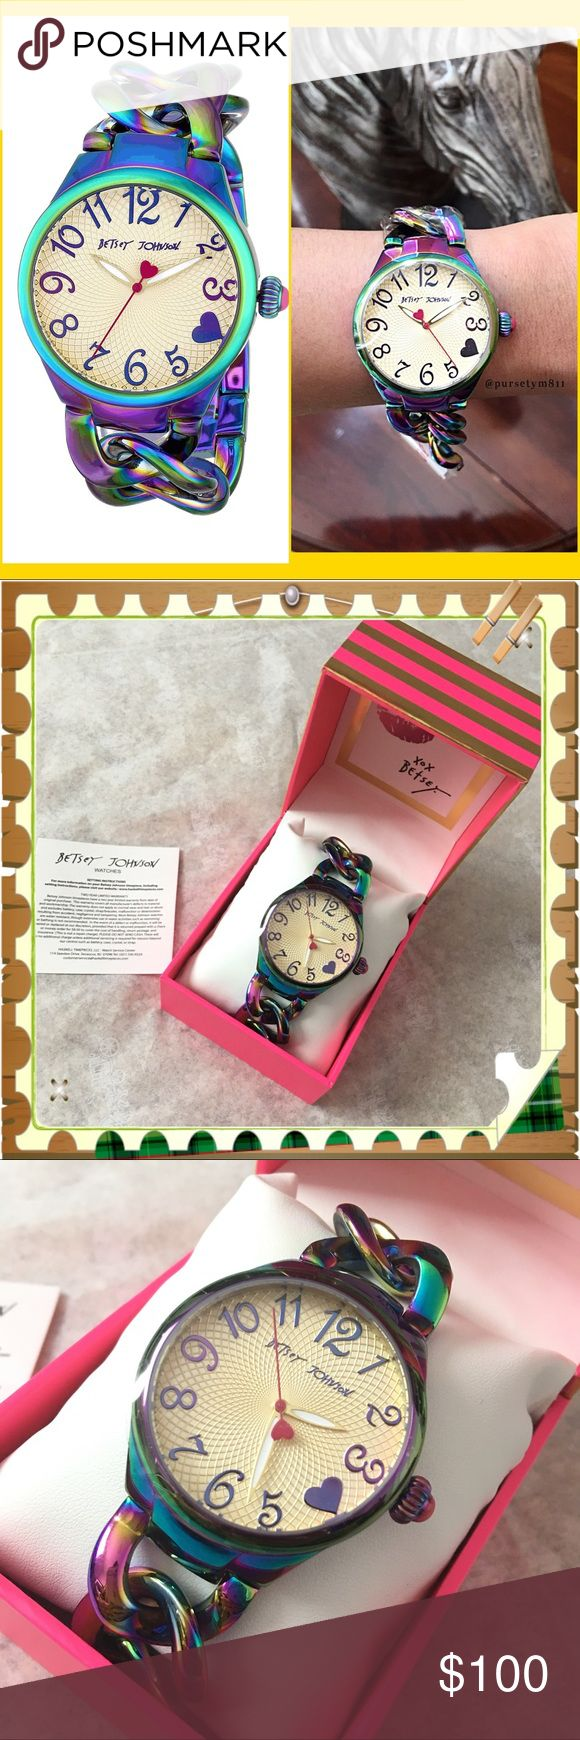 Authentic Betsey Johnson Iridescent Chain Watch Show off the charm and playfulness of the colors of the rainbow, personified w/ this eye-catching Betsey Johnson watch. A multicolor, iridescent case and round bezel beautifully offset a light champagne textured dial, set w/ numeral markers. Boasting Quartz movements. Never used. GORGEOUS. Betsey Johnson Accessories Watches